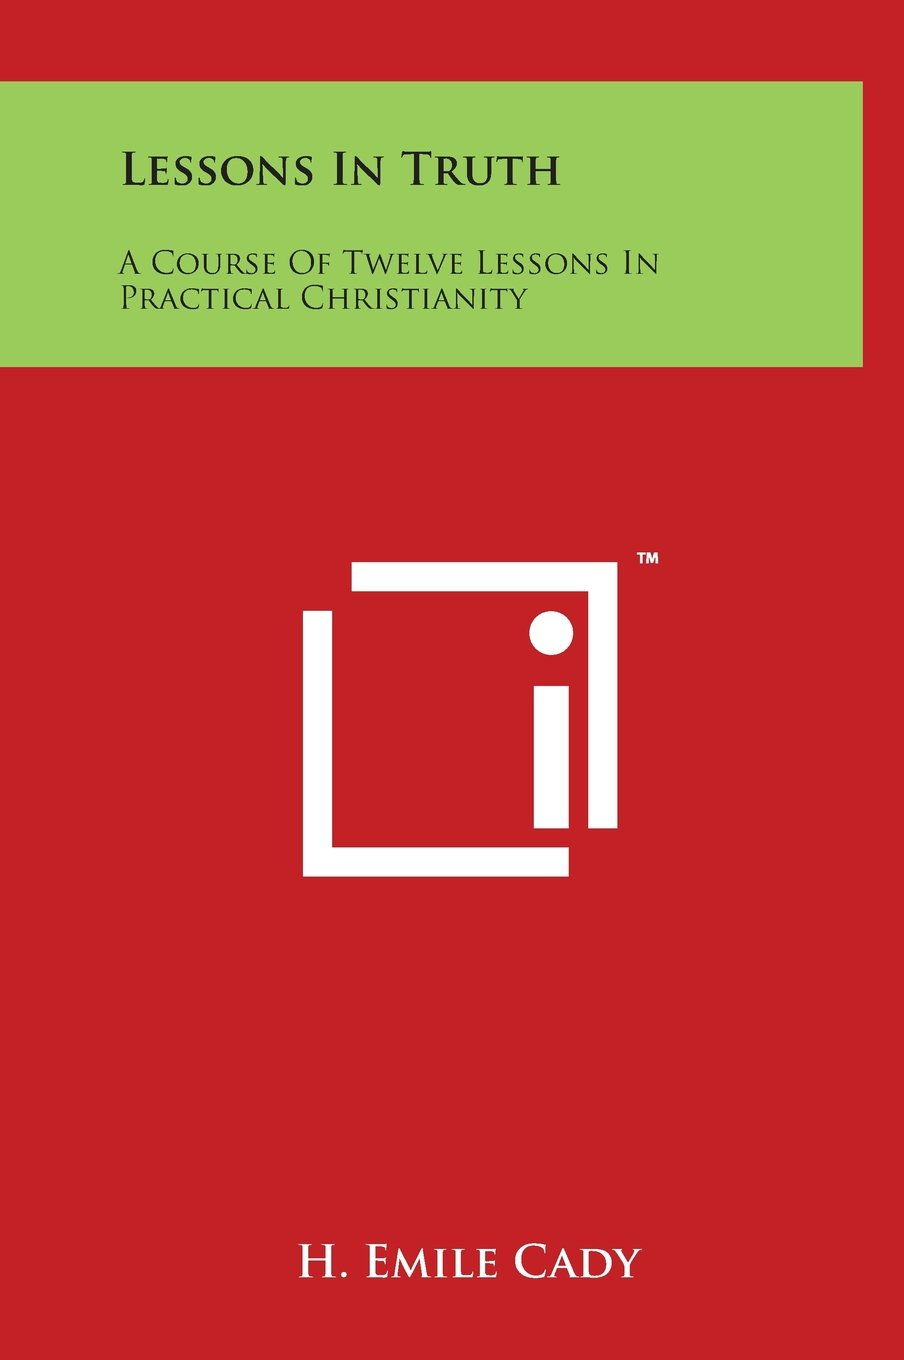 Download Lessons In Truth: A Course Of Twelve Lessons In Practical Christianity pdf